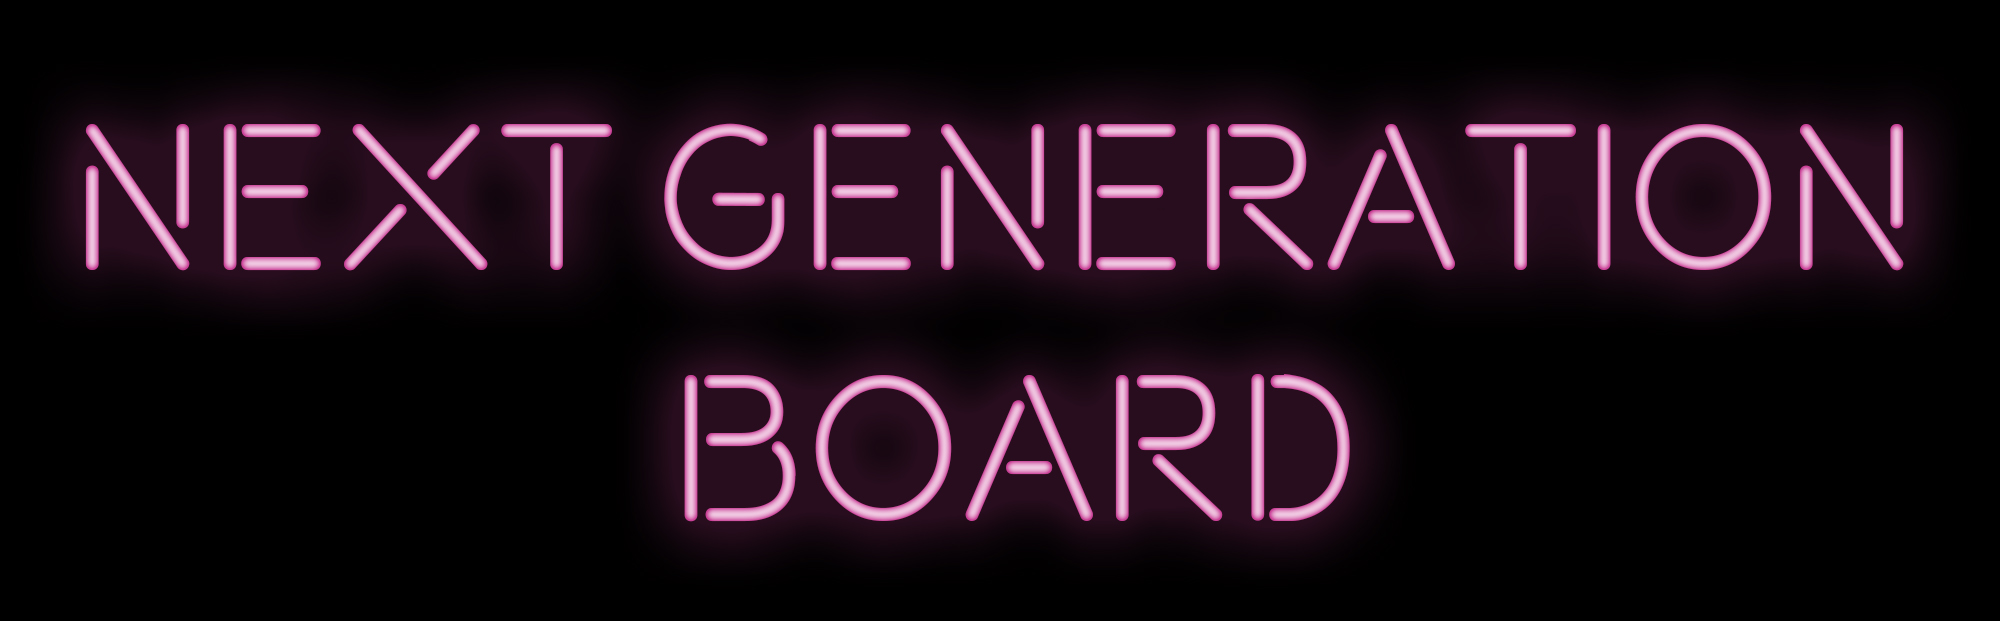 Next Generation Board